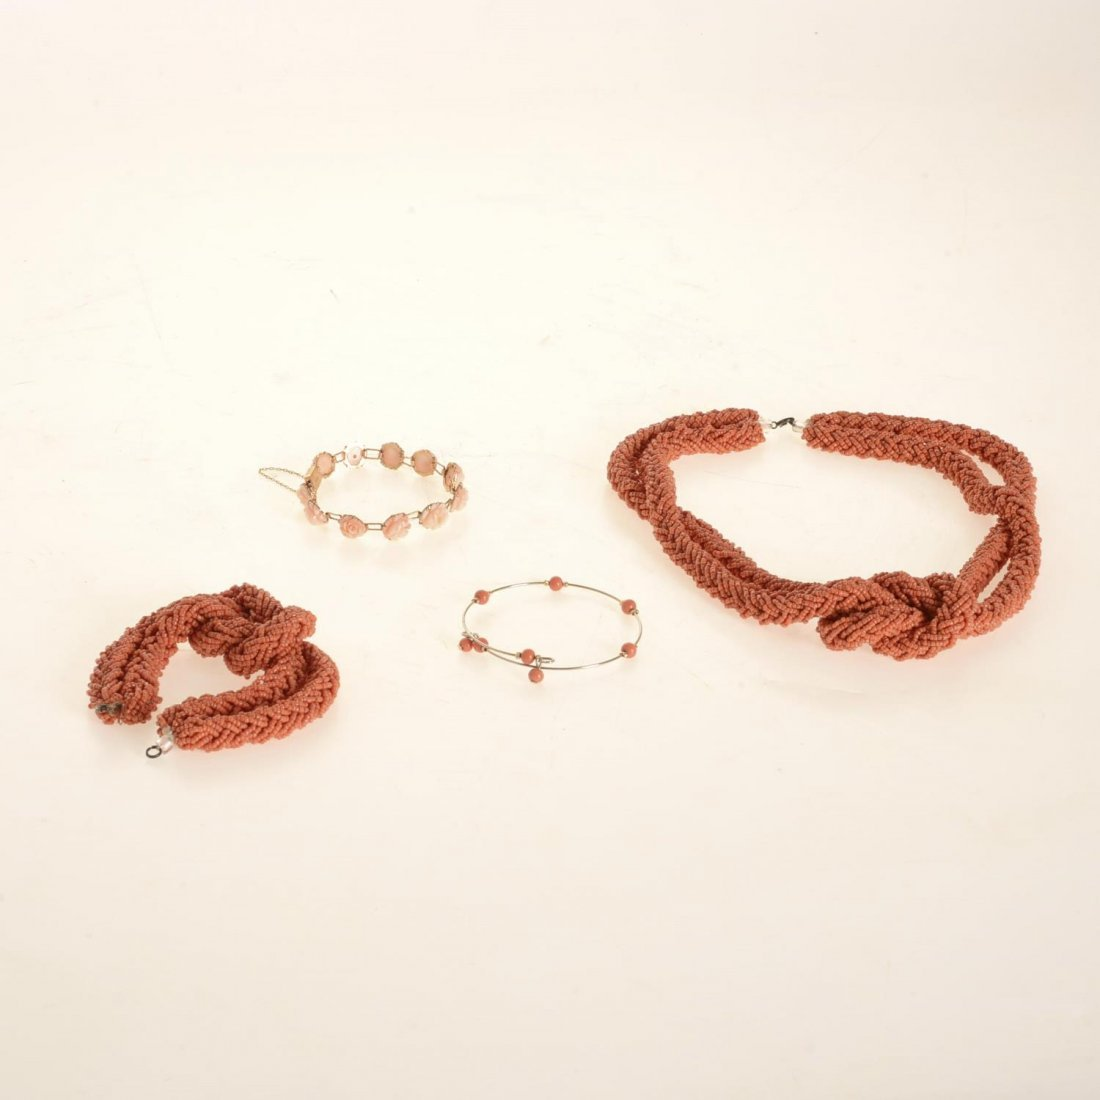 (4) pcs. Antique coral jewelry